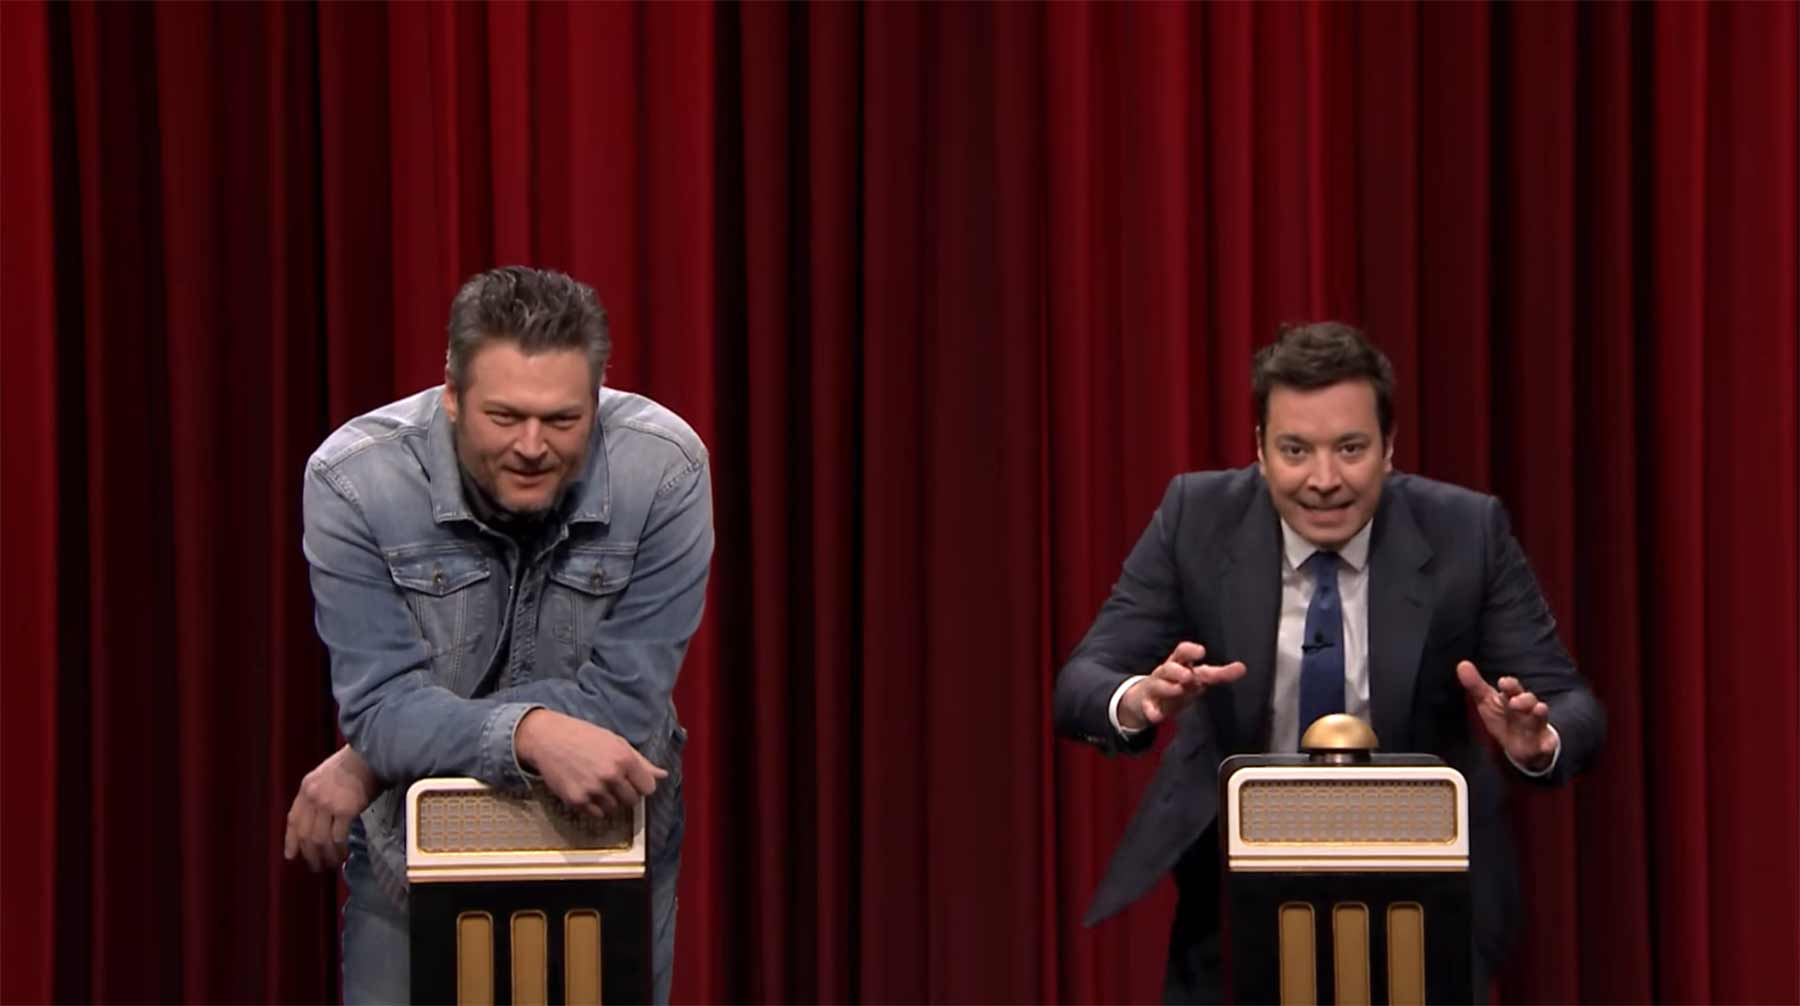 Songraten mit Jimmy Fallon und Blake Shelton Name-That-Song-Challenge-with-Blake-Shelton